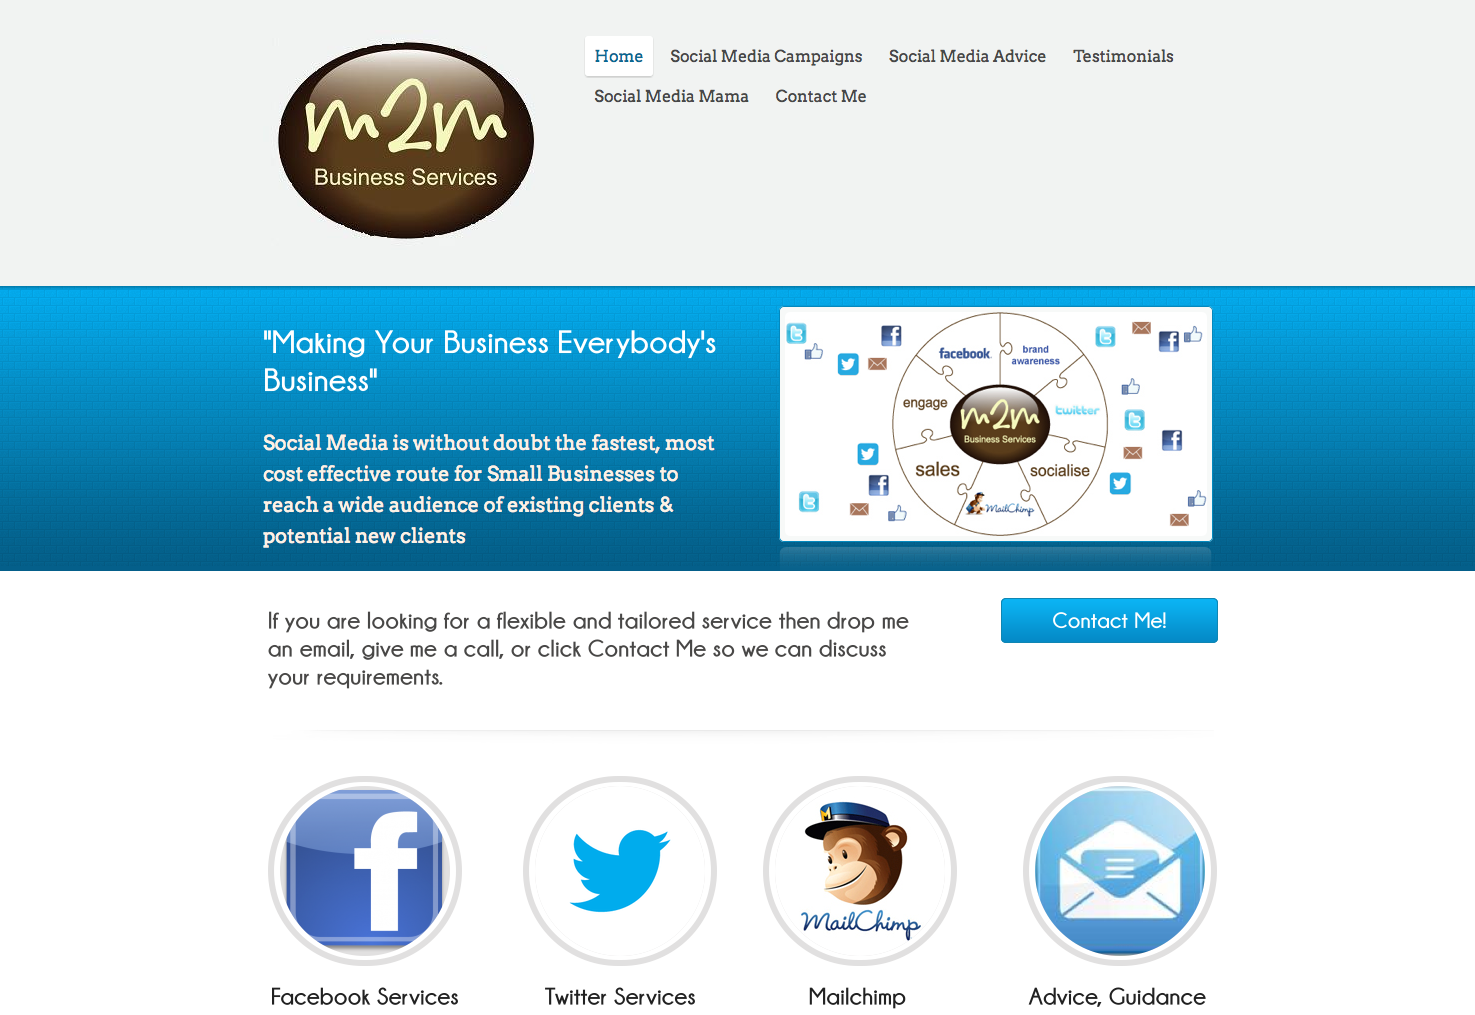 M2M Business Services